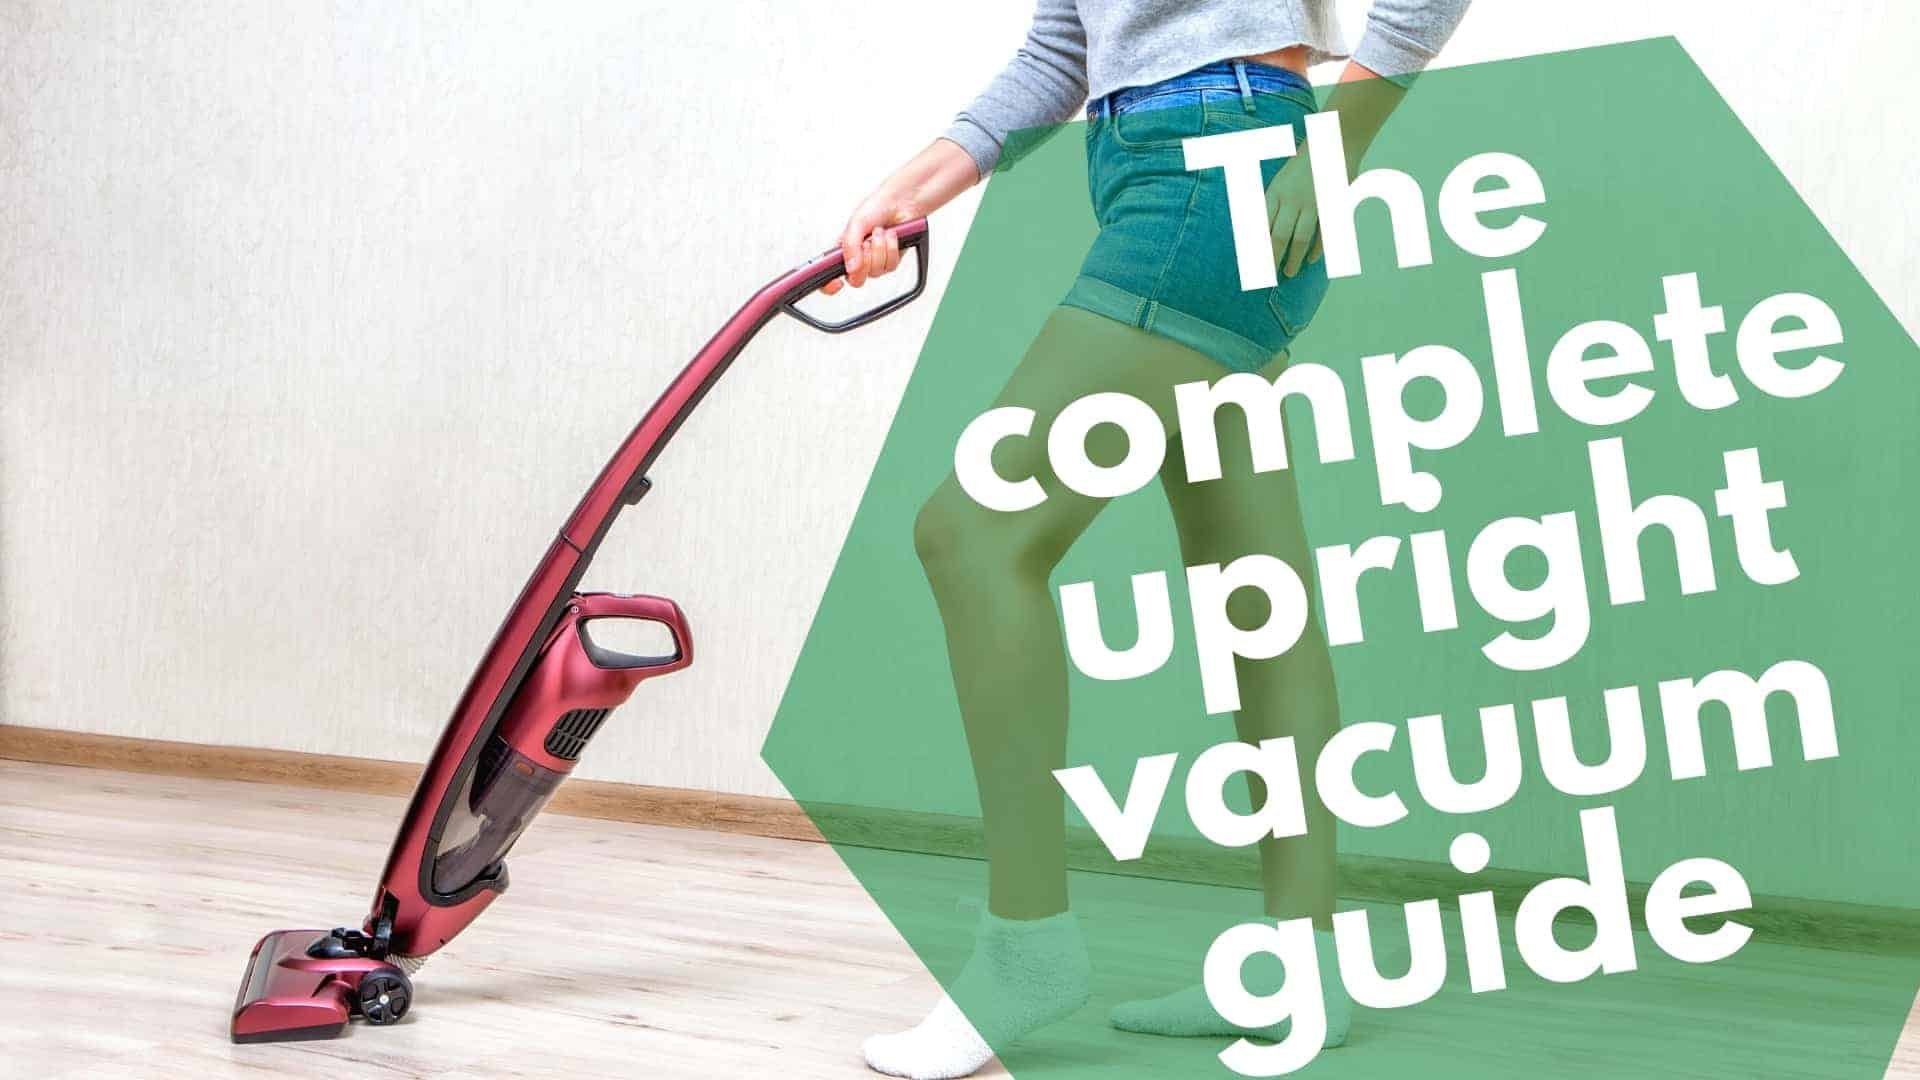 The-complete-upright-vacuum-guide